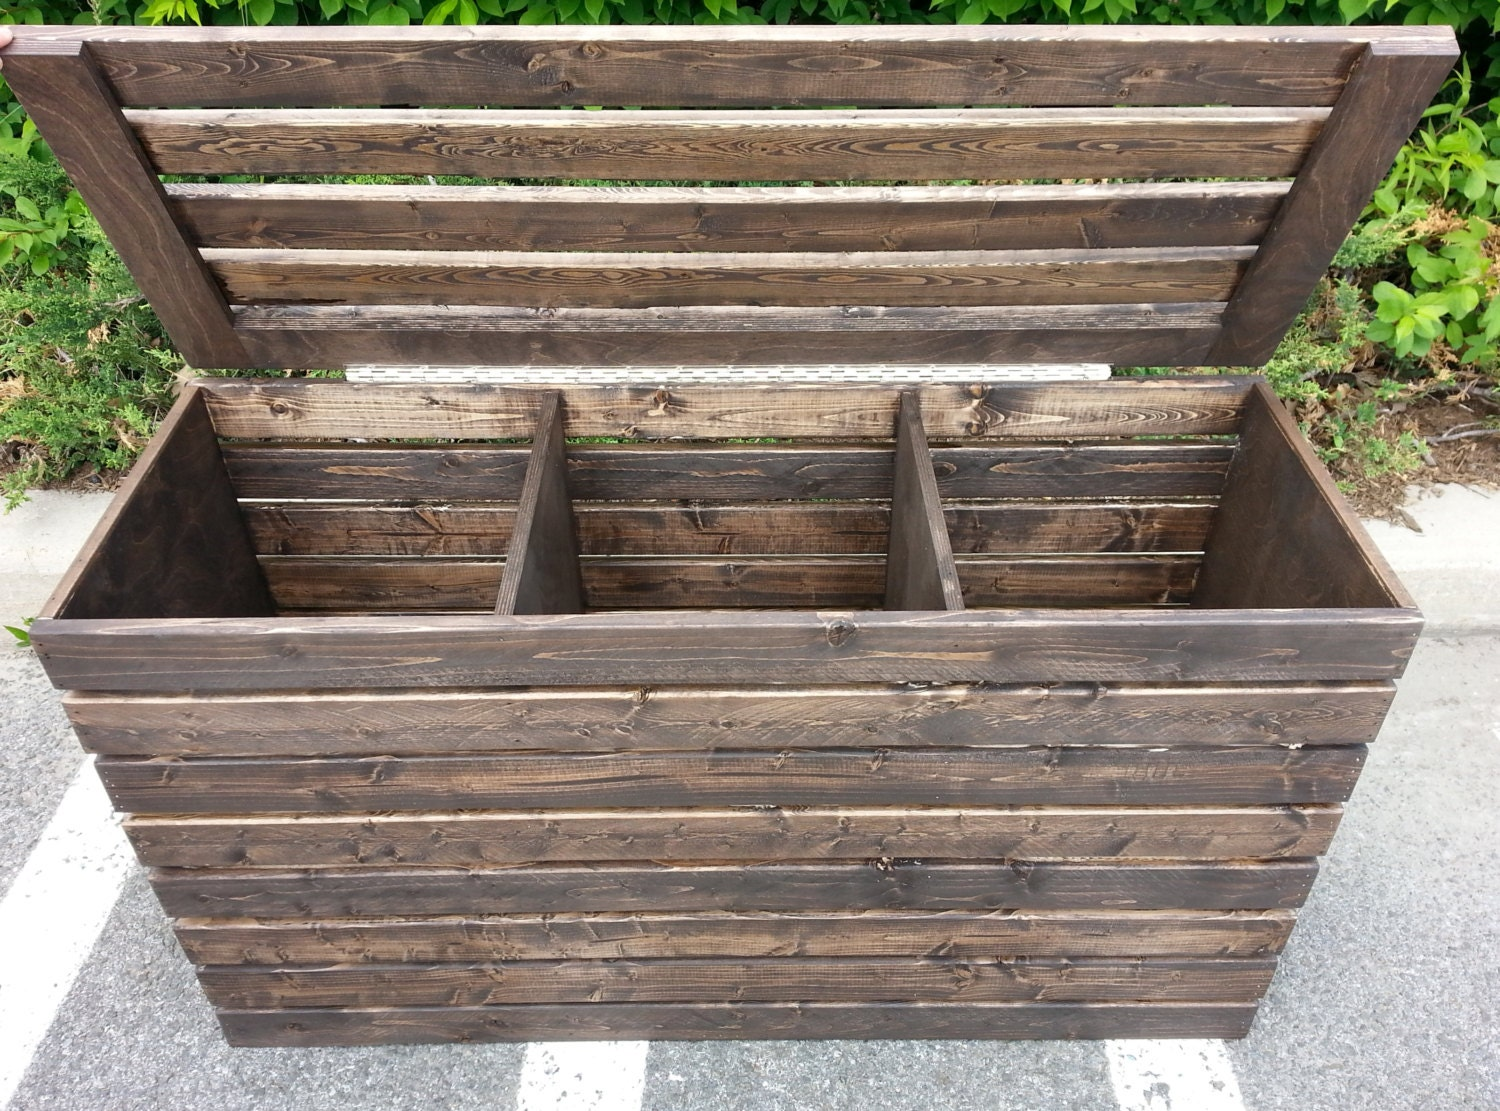 Laundry basket free shipping rustic crate by rusticfurniturecraft